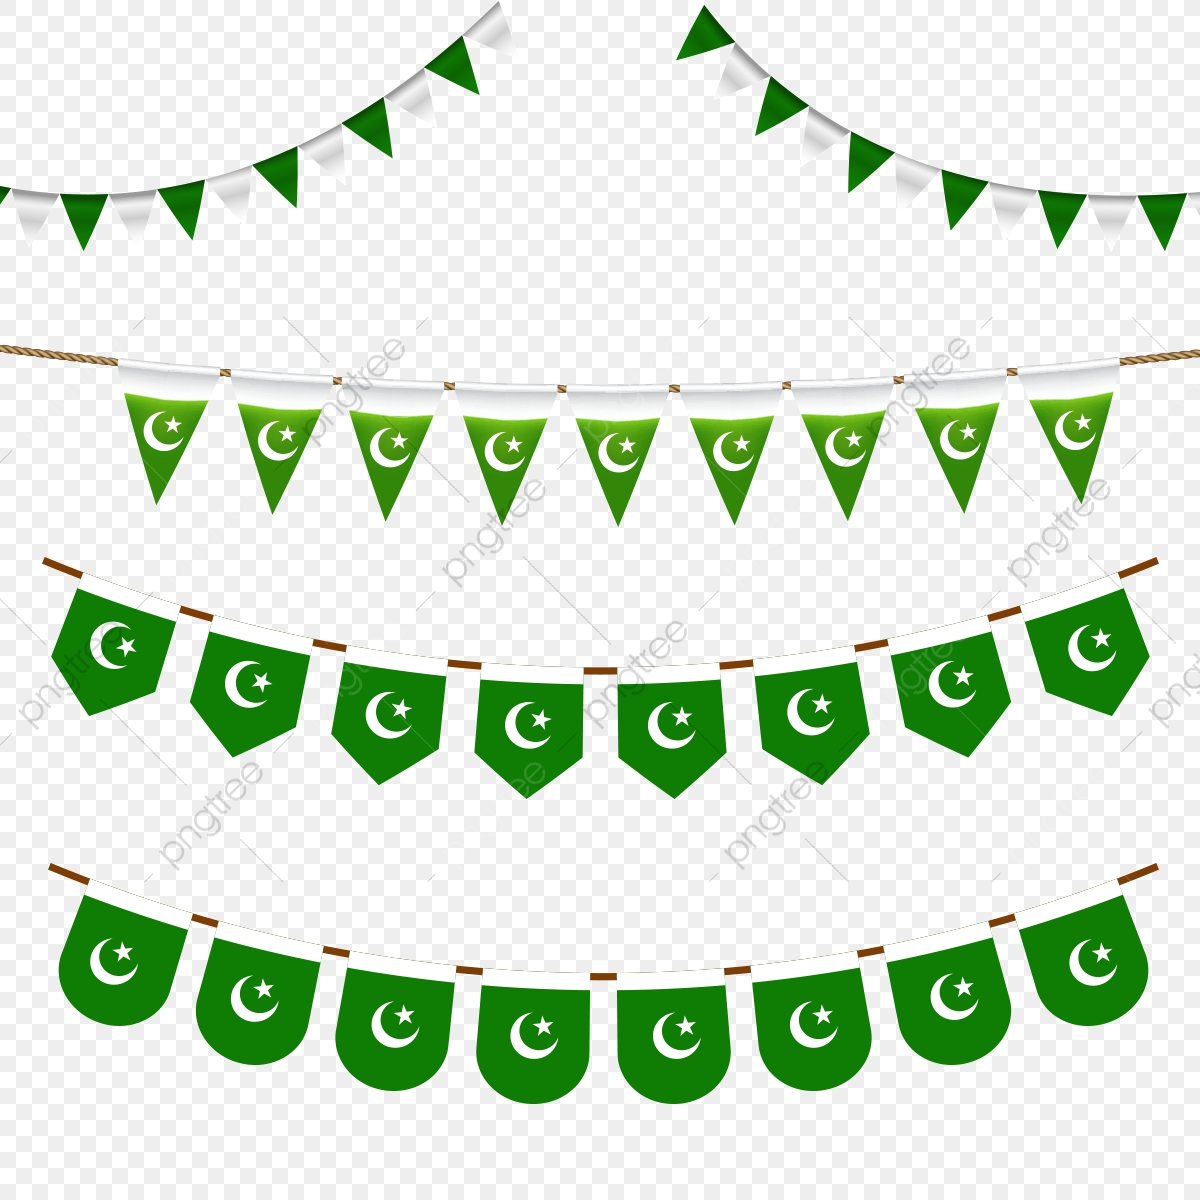 14 august png images pakistan  august bunting  august pakistan, png, bunting